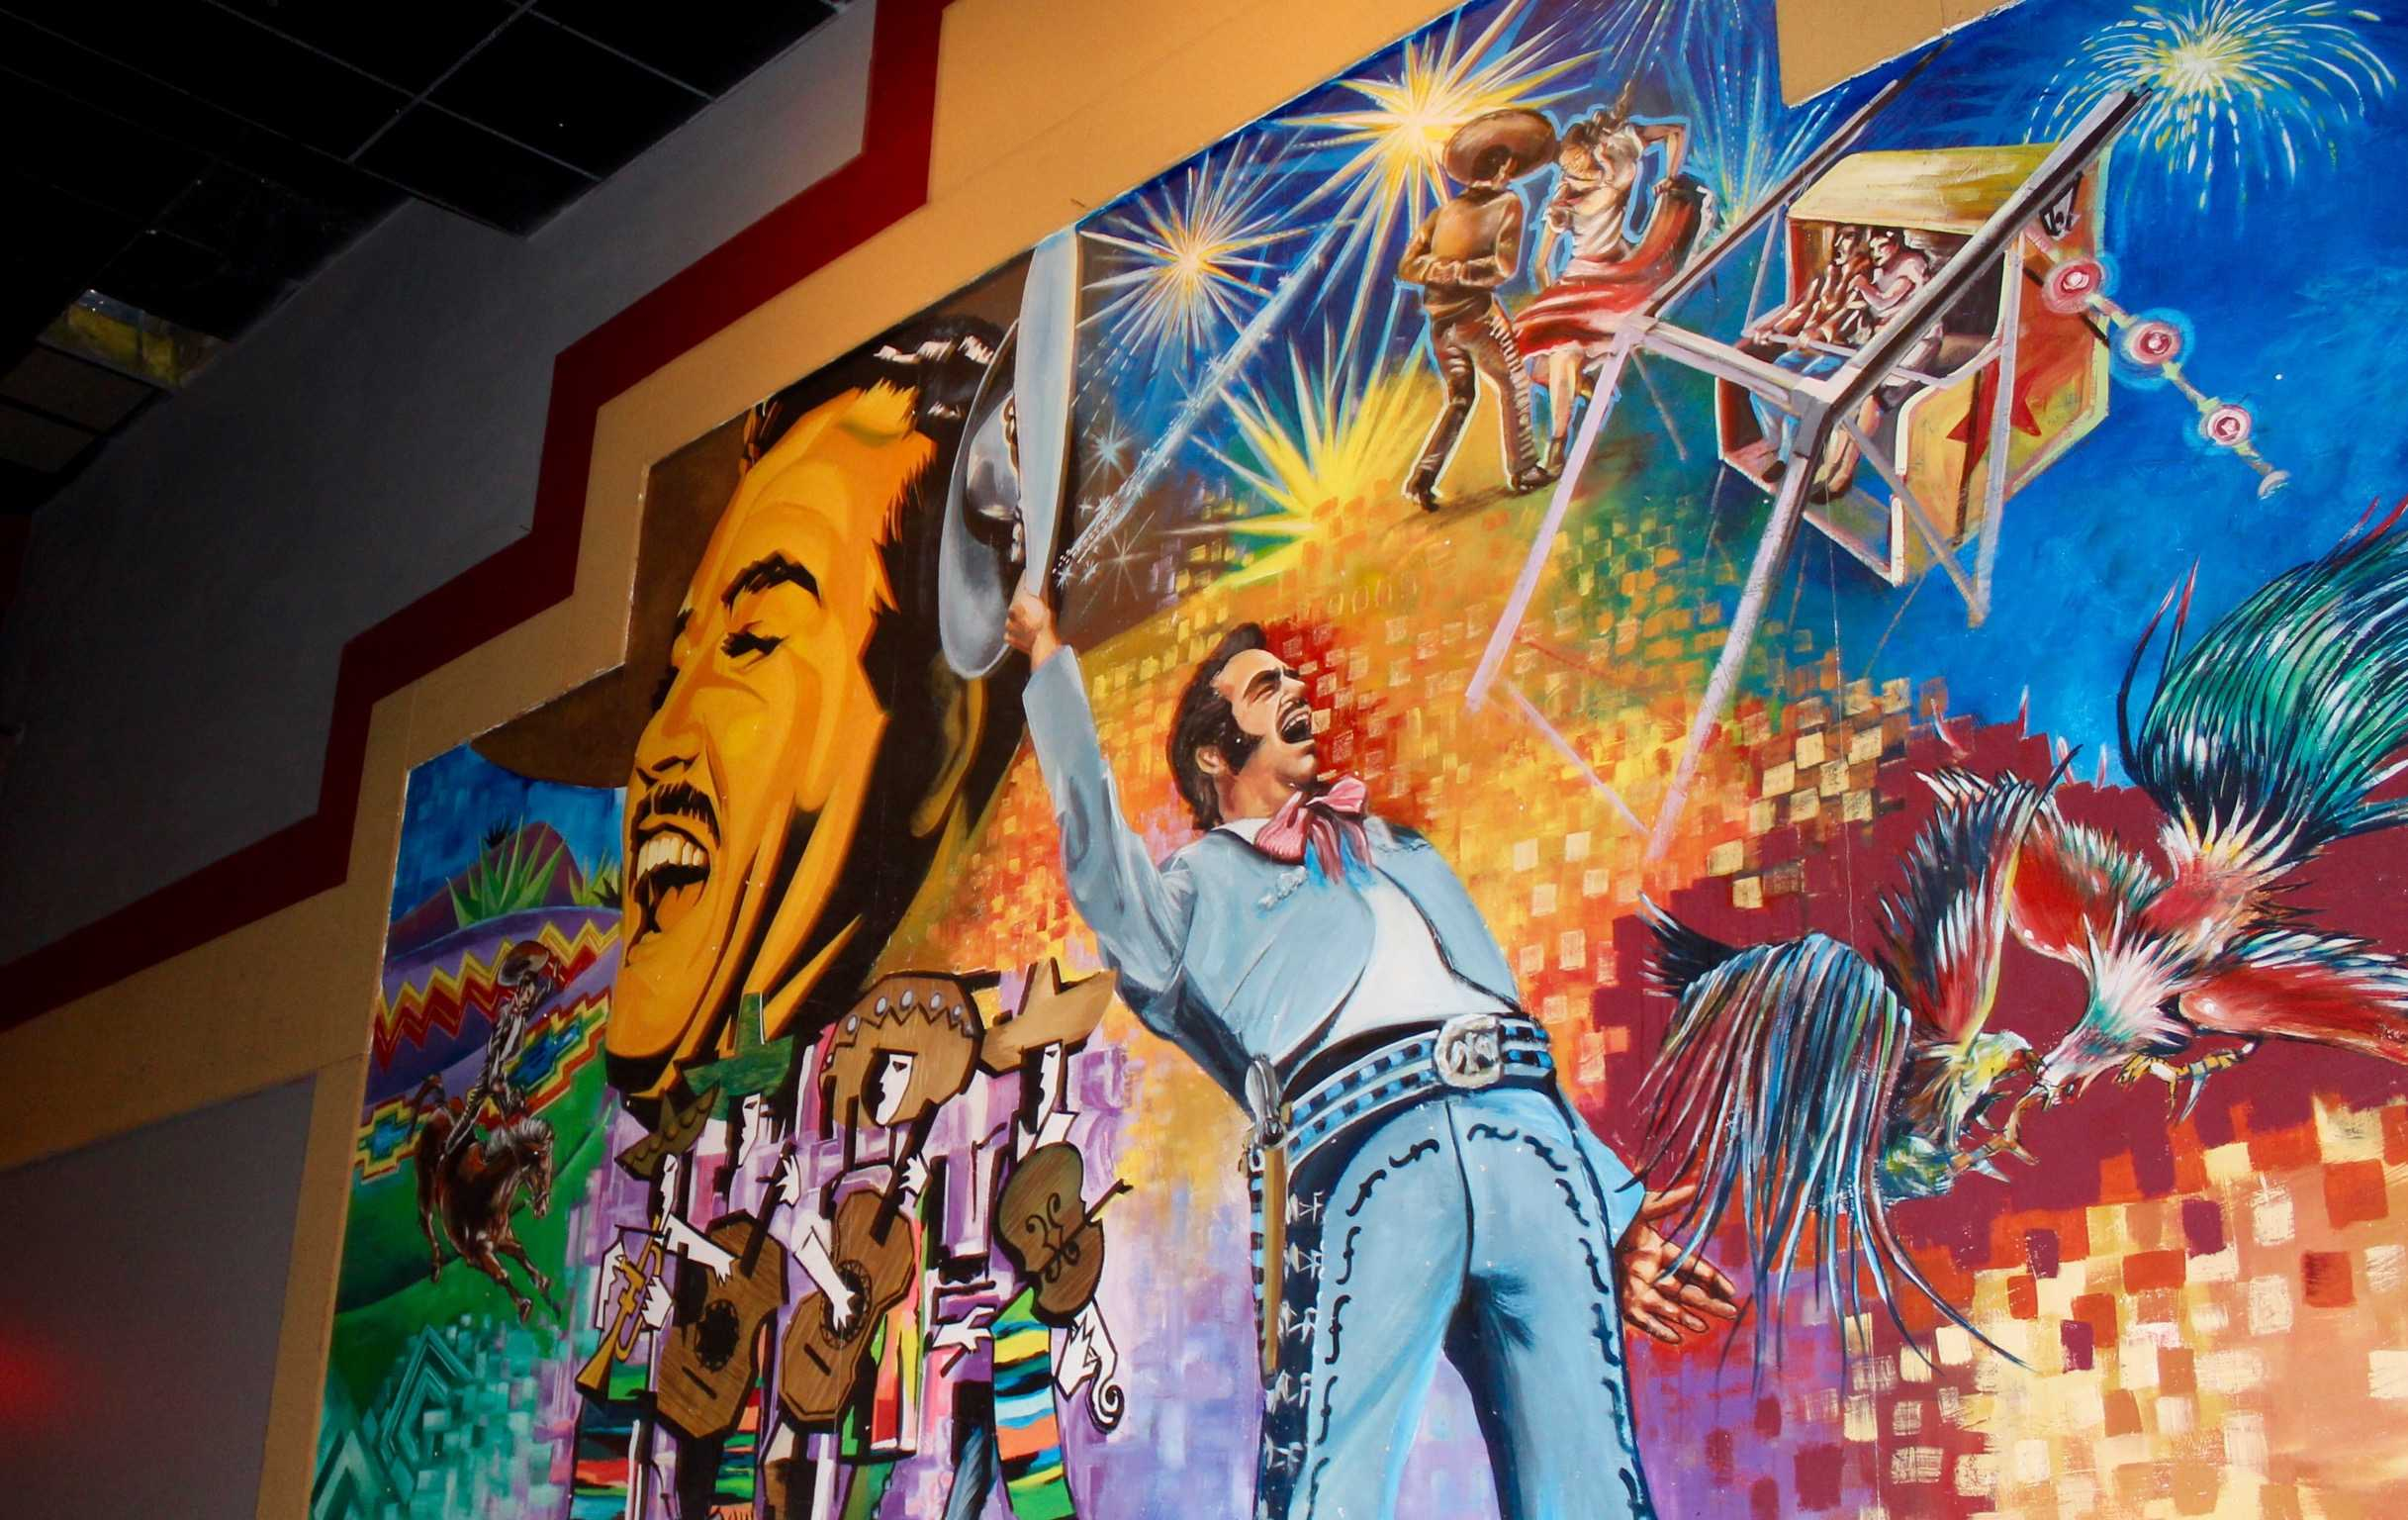 Inside+both+of+the+screening+rooms+are+vibrant+and+colorful+paintings.+In+this+room+is+a+painting+of+a+bullfighter+and+flamenco+dancer.